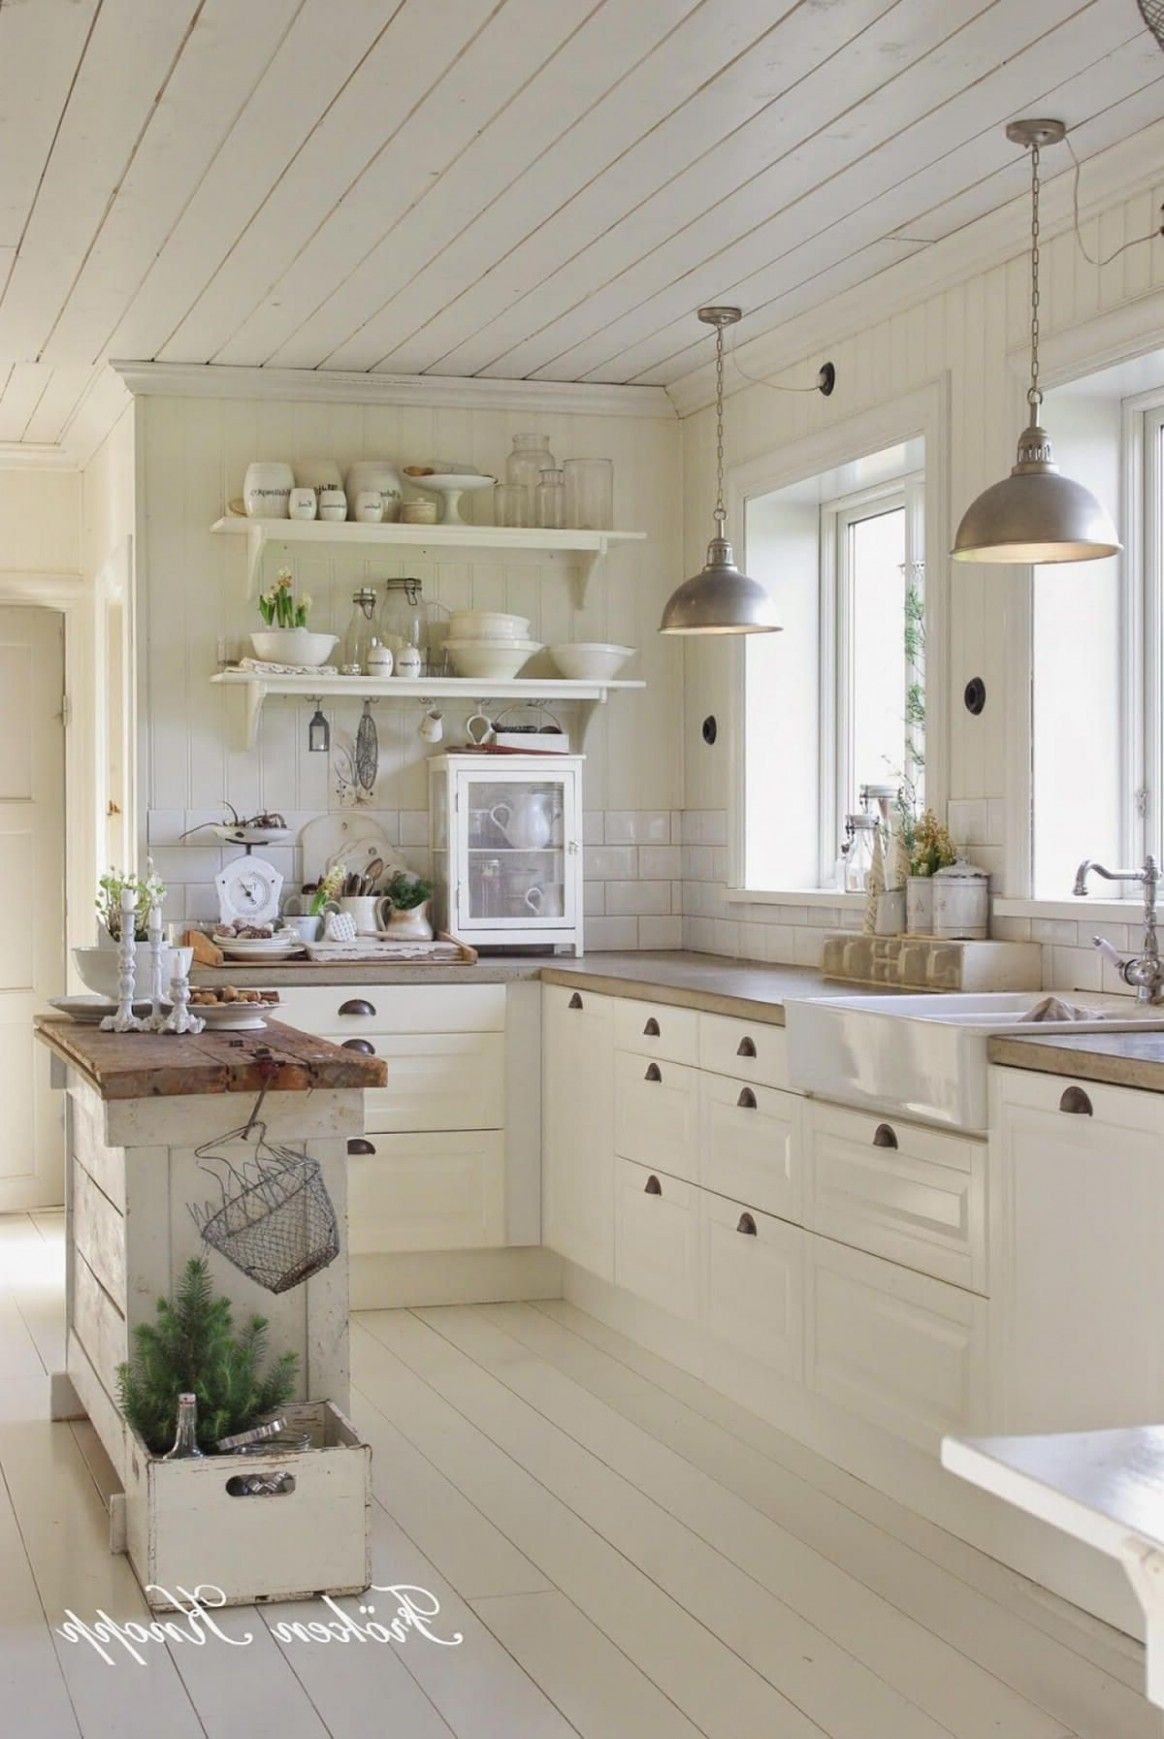 21 Charming French Country Decor Ideas With Timeless Appeal 21 Kitchen Remodel Small Kitchen Design Small Country Kitchen